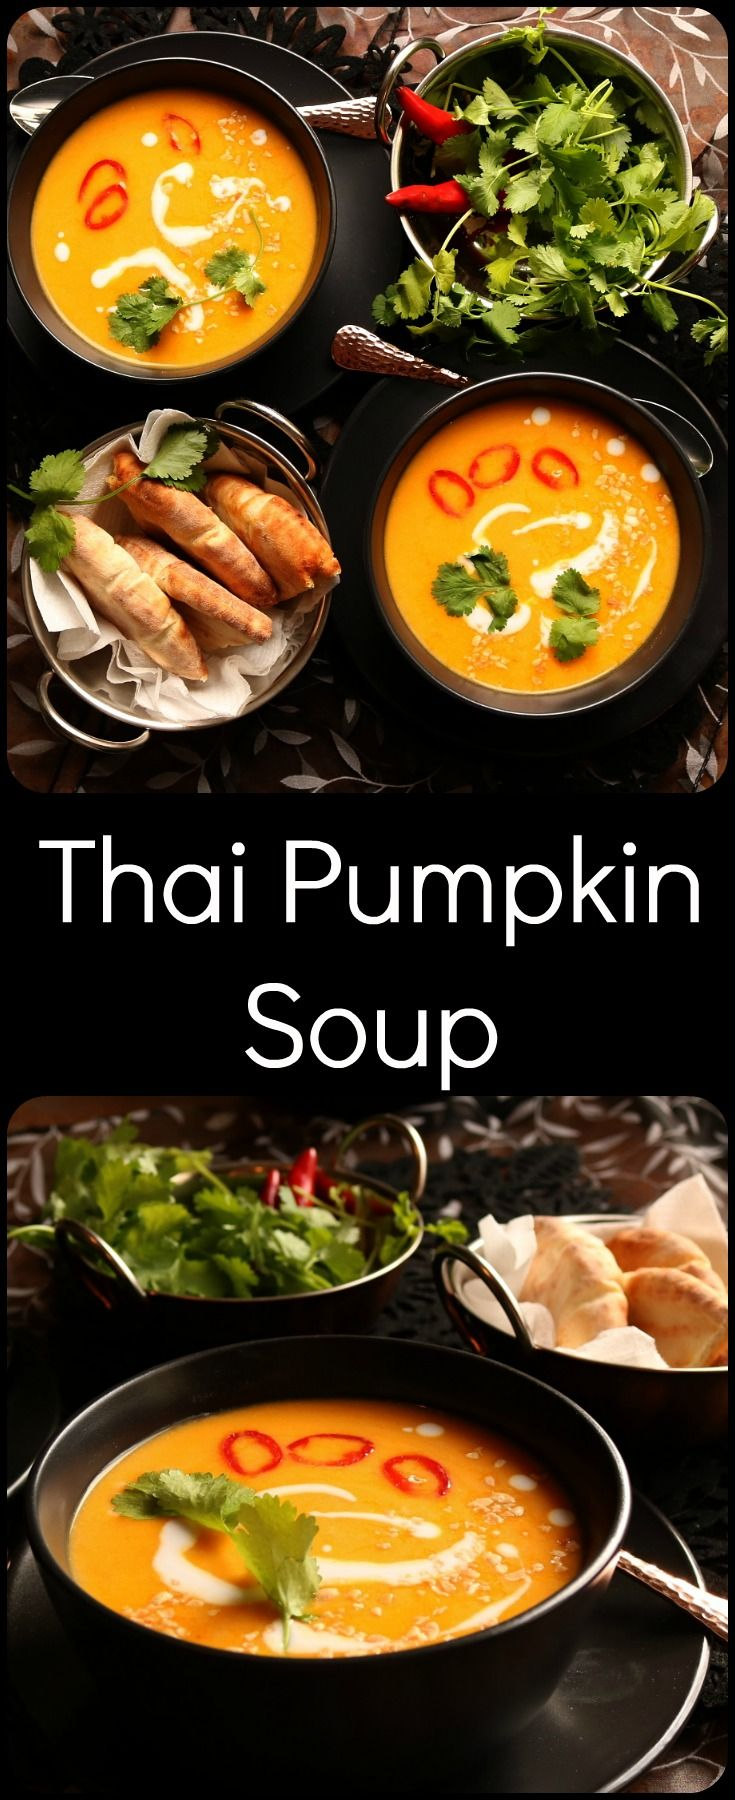 A Thai inspired pumpkin soup made with lemongrass, ginger, garlic, red curry paste and coconut cream, making it a lovely winter warmer.